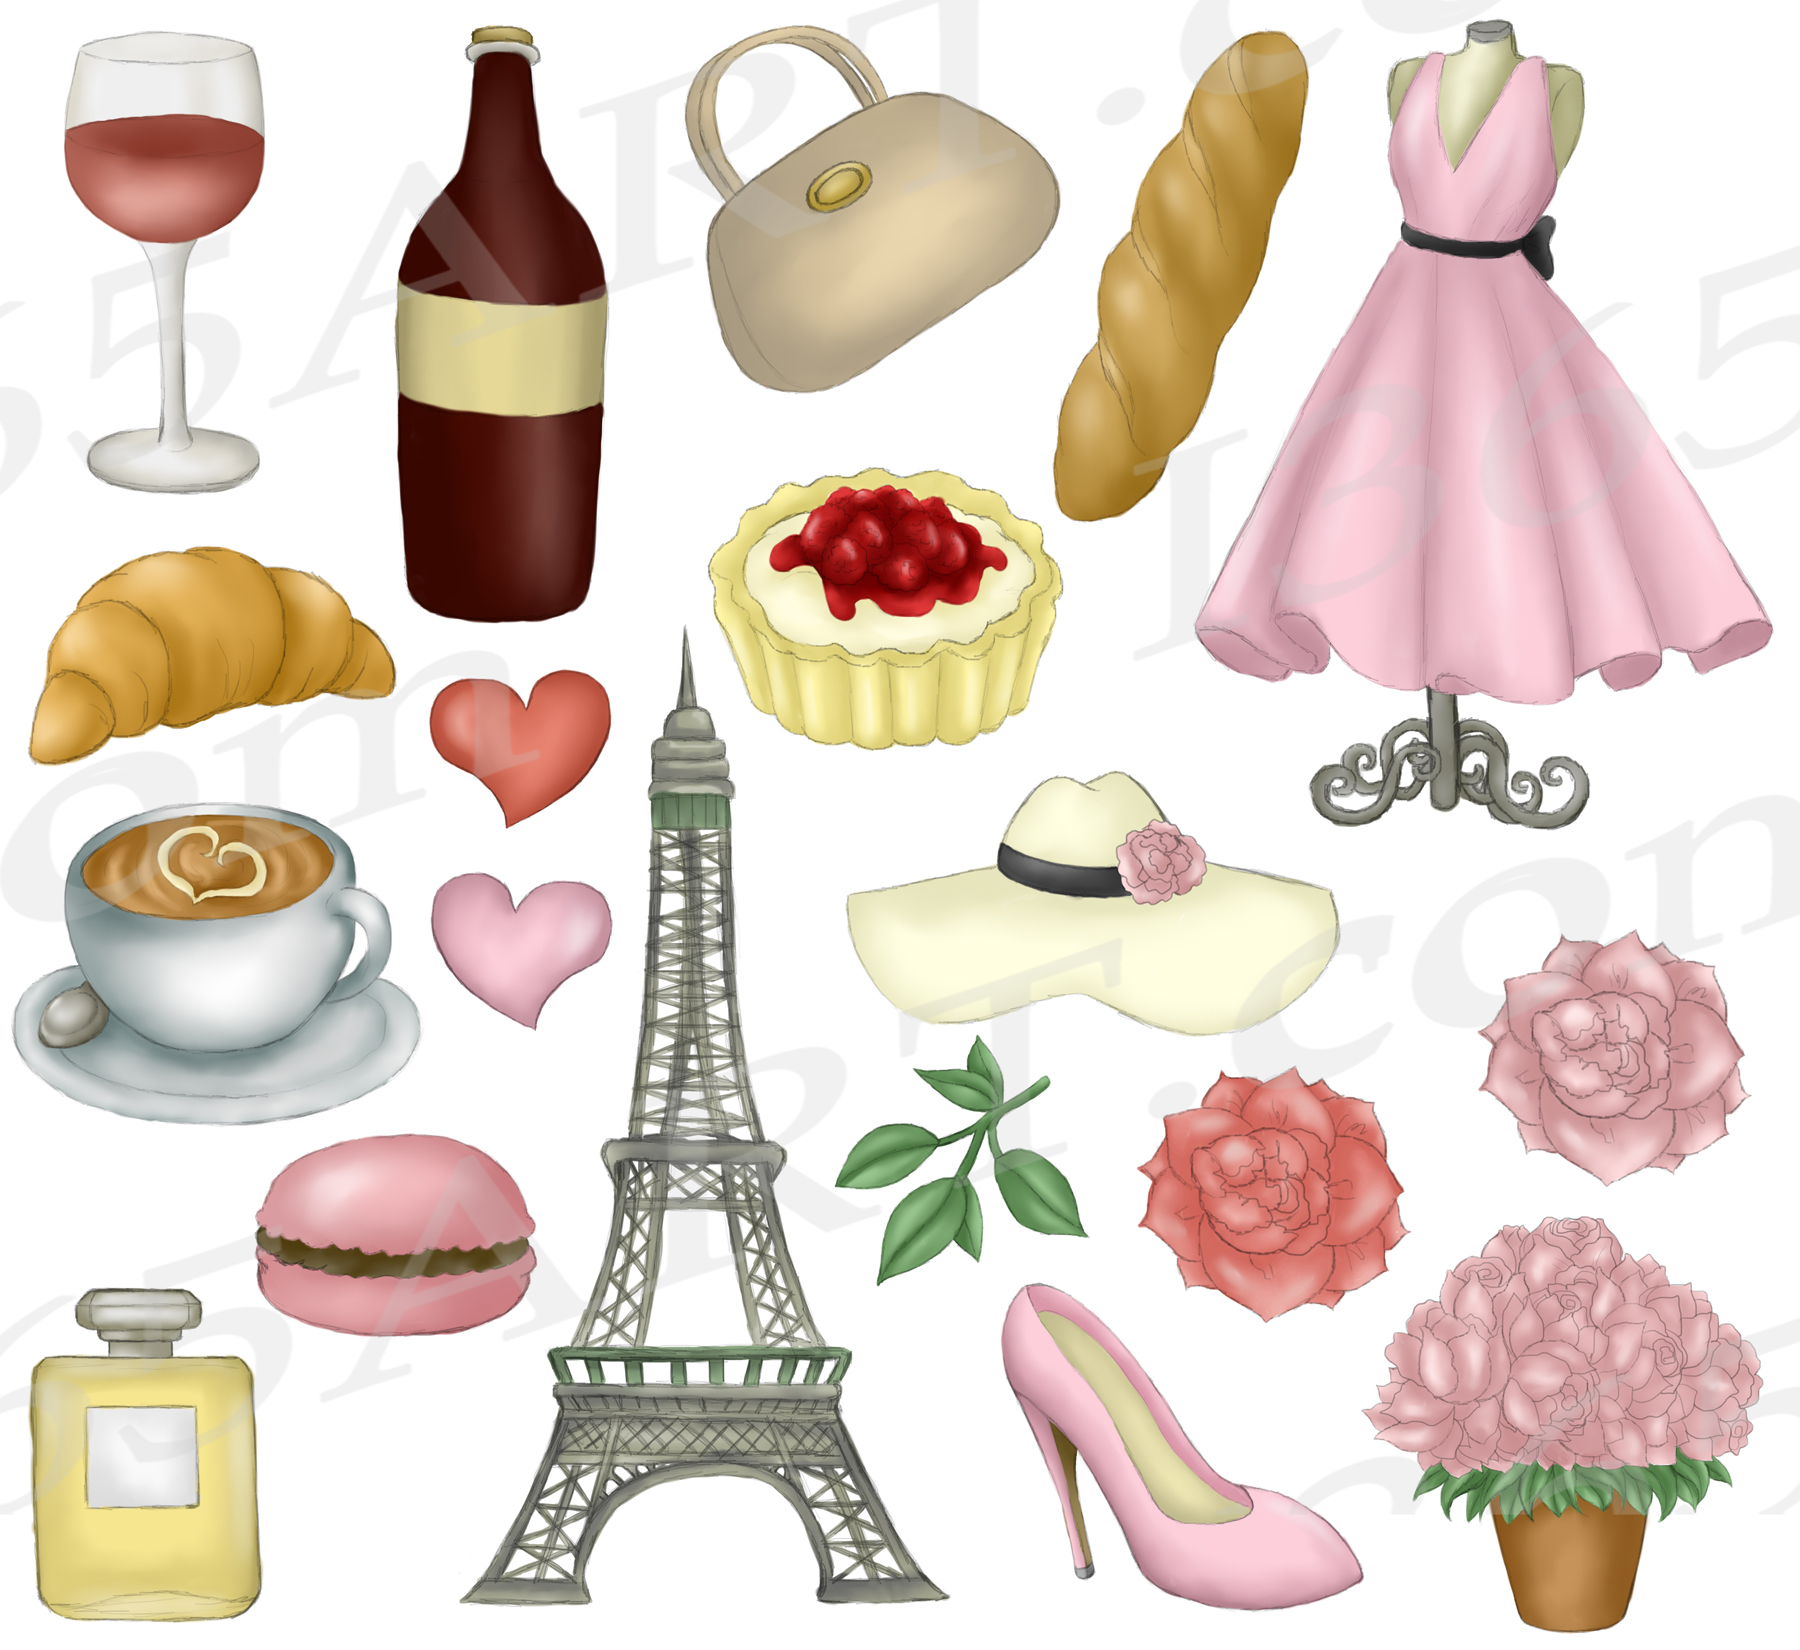 Springtime in Paris Clipart Girls & Fashion Illustrations example image 2